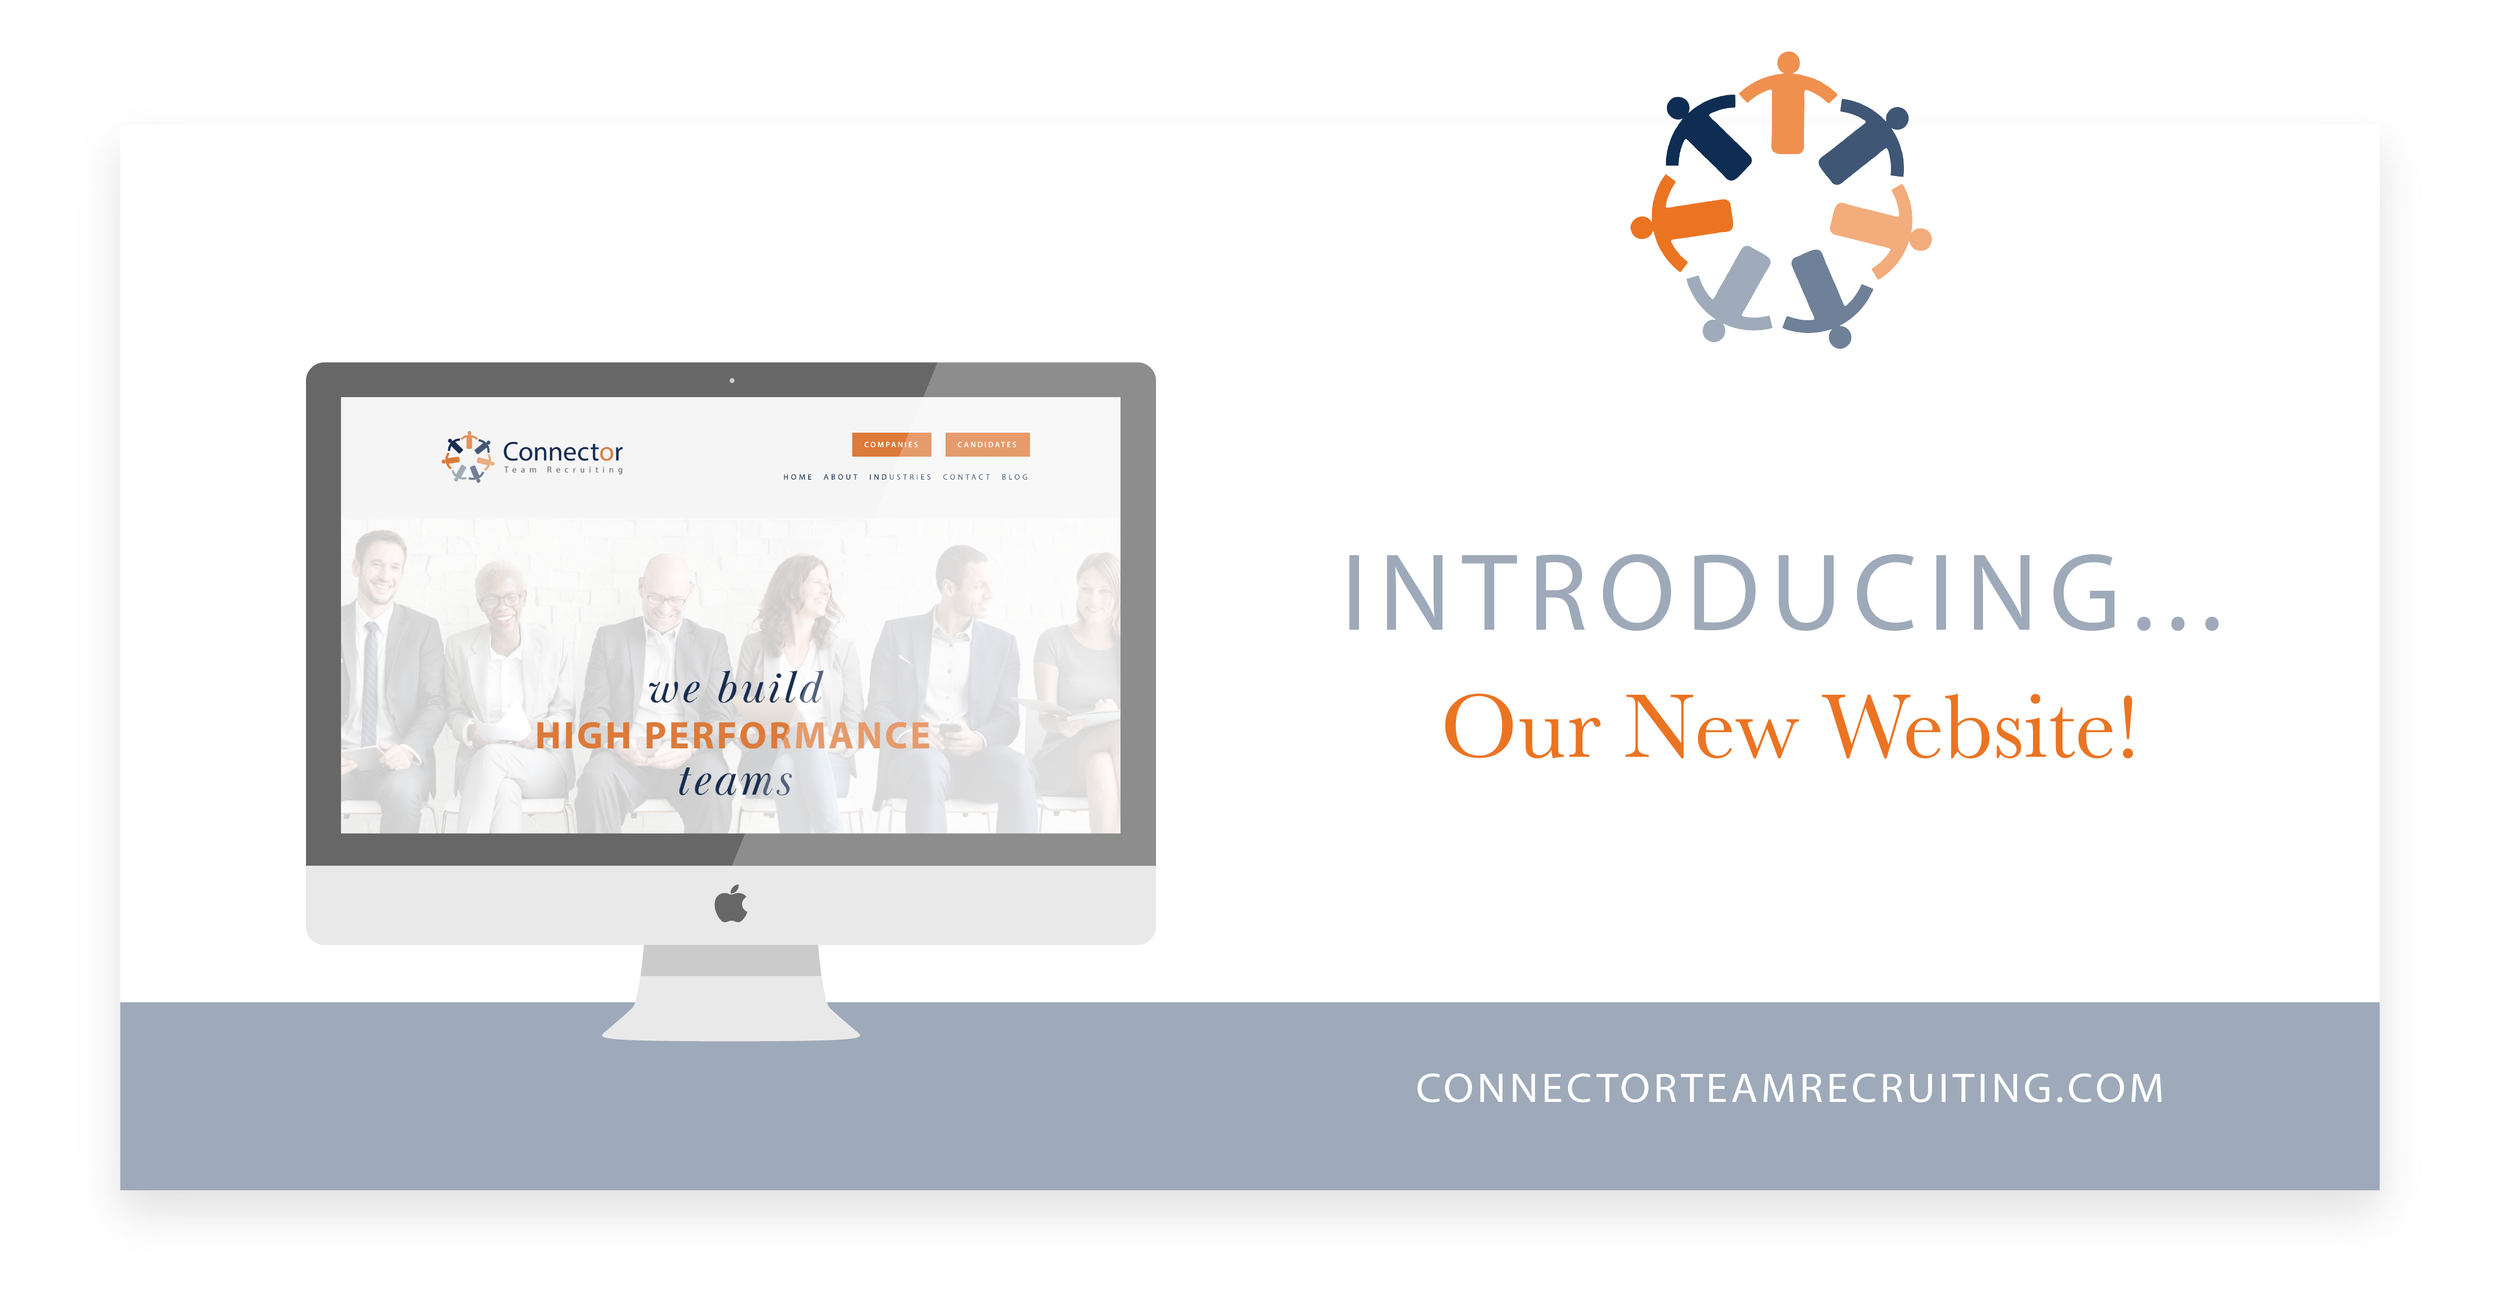 Introducing Our New Website_Connector Team Recruiting-01.png